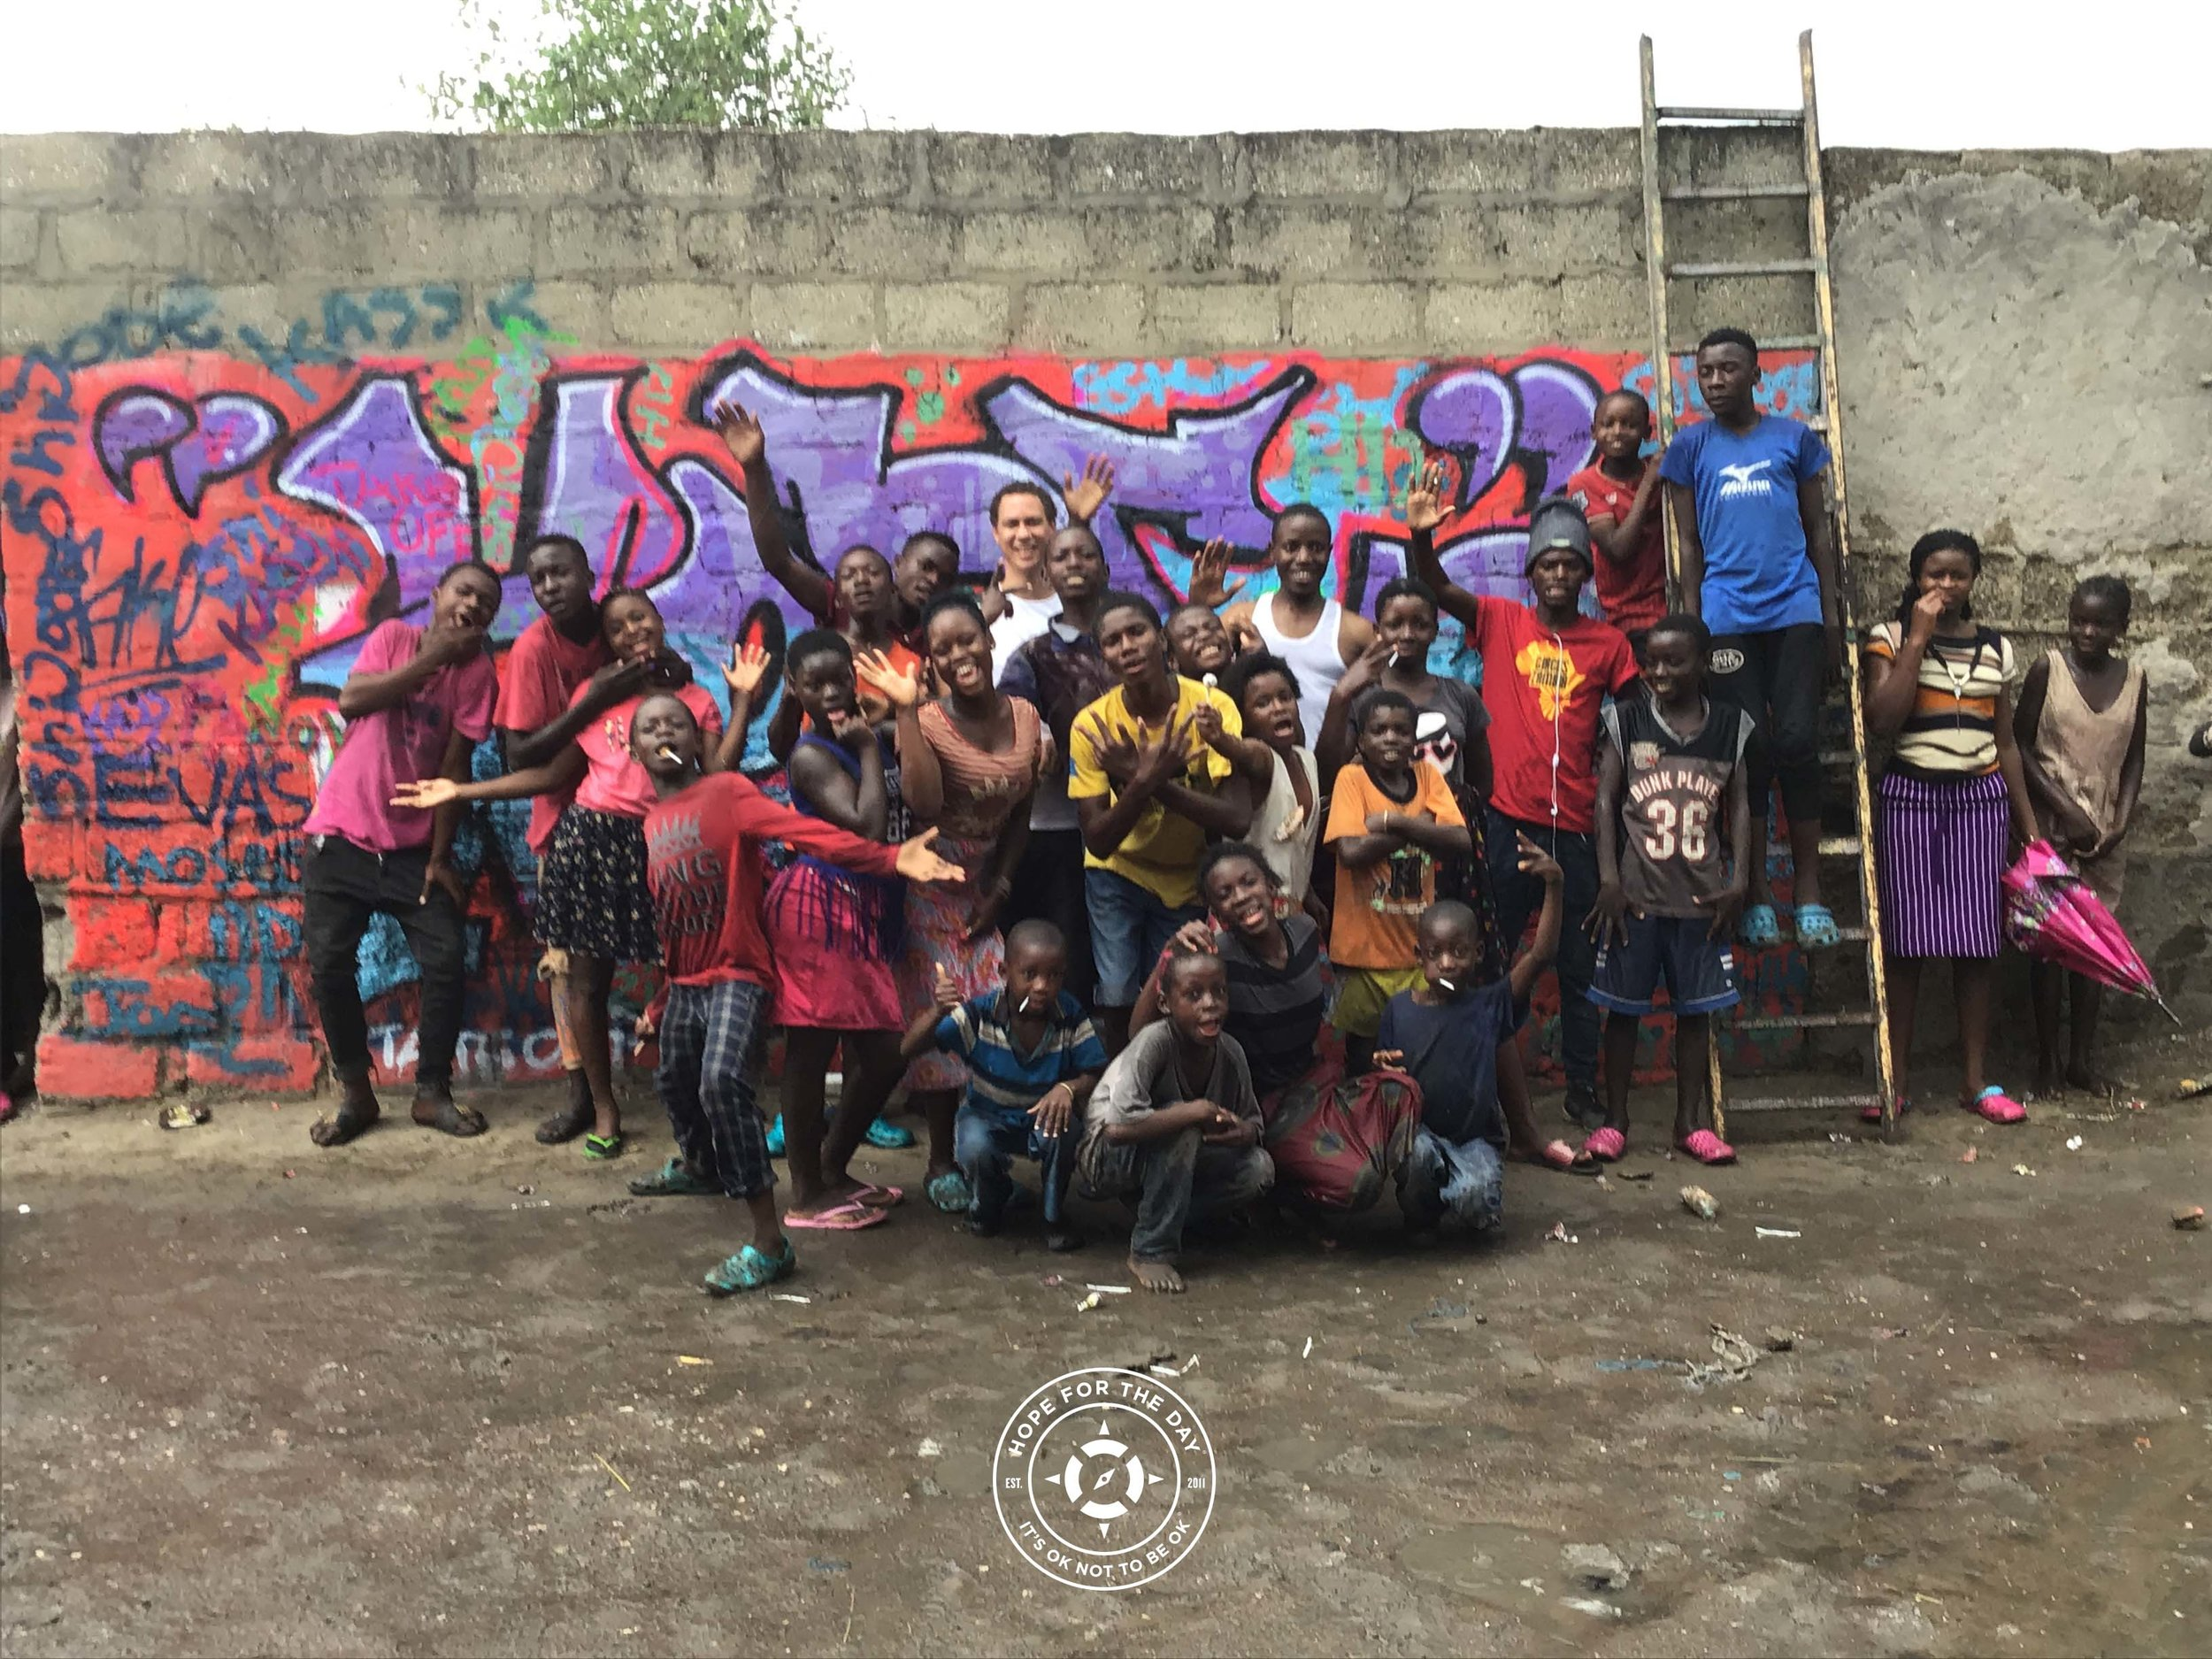 """Group photo in front of the newly completed """"Hope"""" mural with Zambian artist Dwain Whitaker. Credit: Nancy Bartosz"""